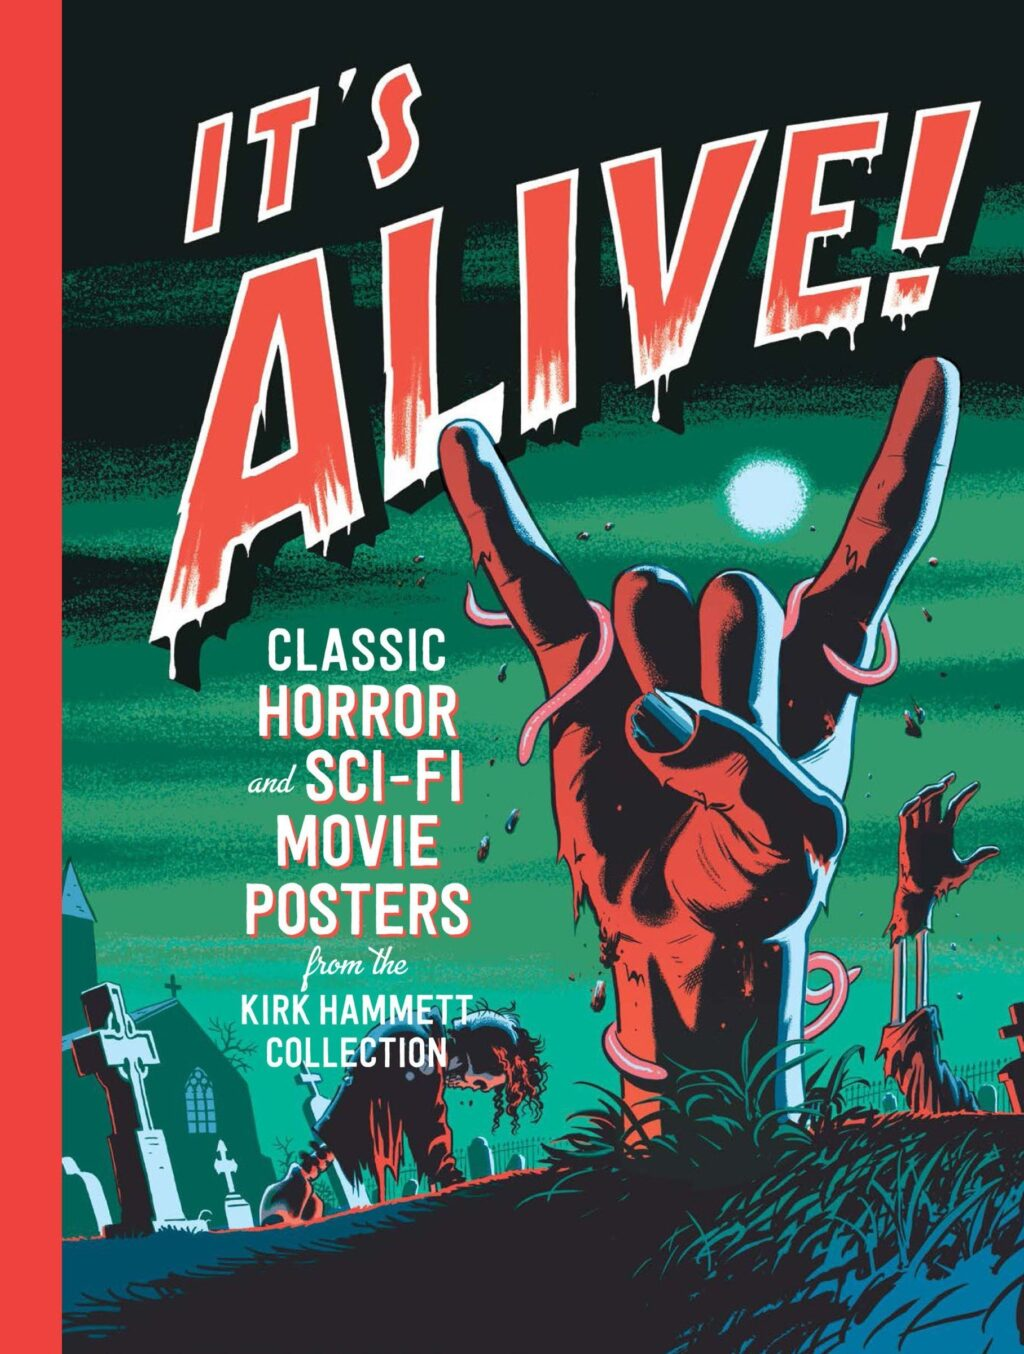 kirkhammettitsalivecover 1024x1354 - METALLICA's Kirk Hammett Bringing His Horror and Sci-Fi Collection to Toronto's ROM This Year